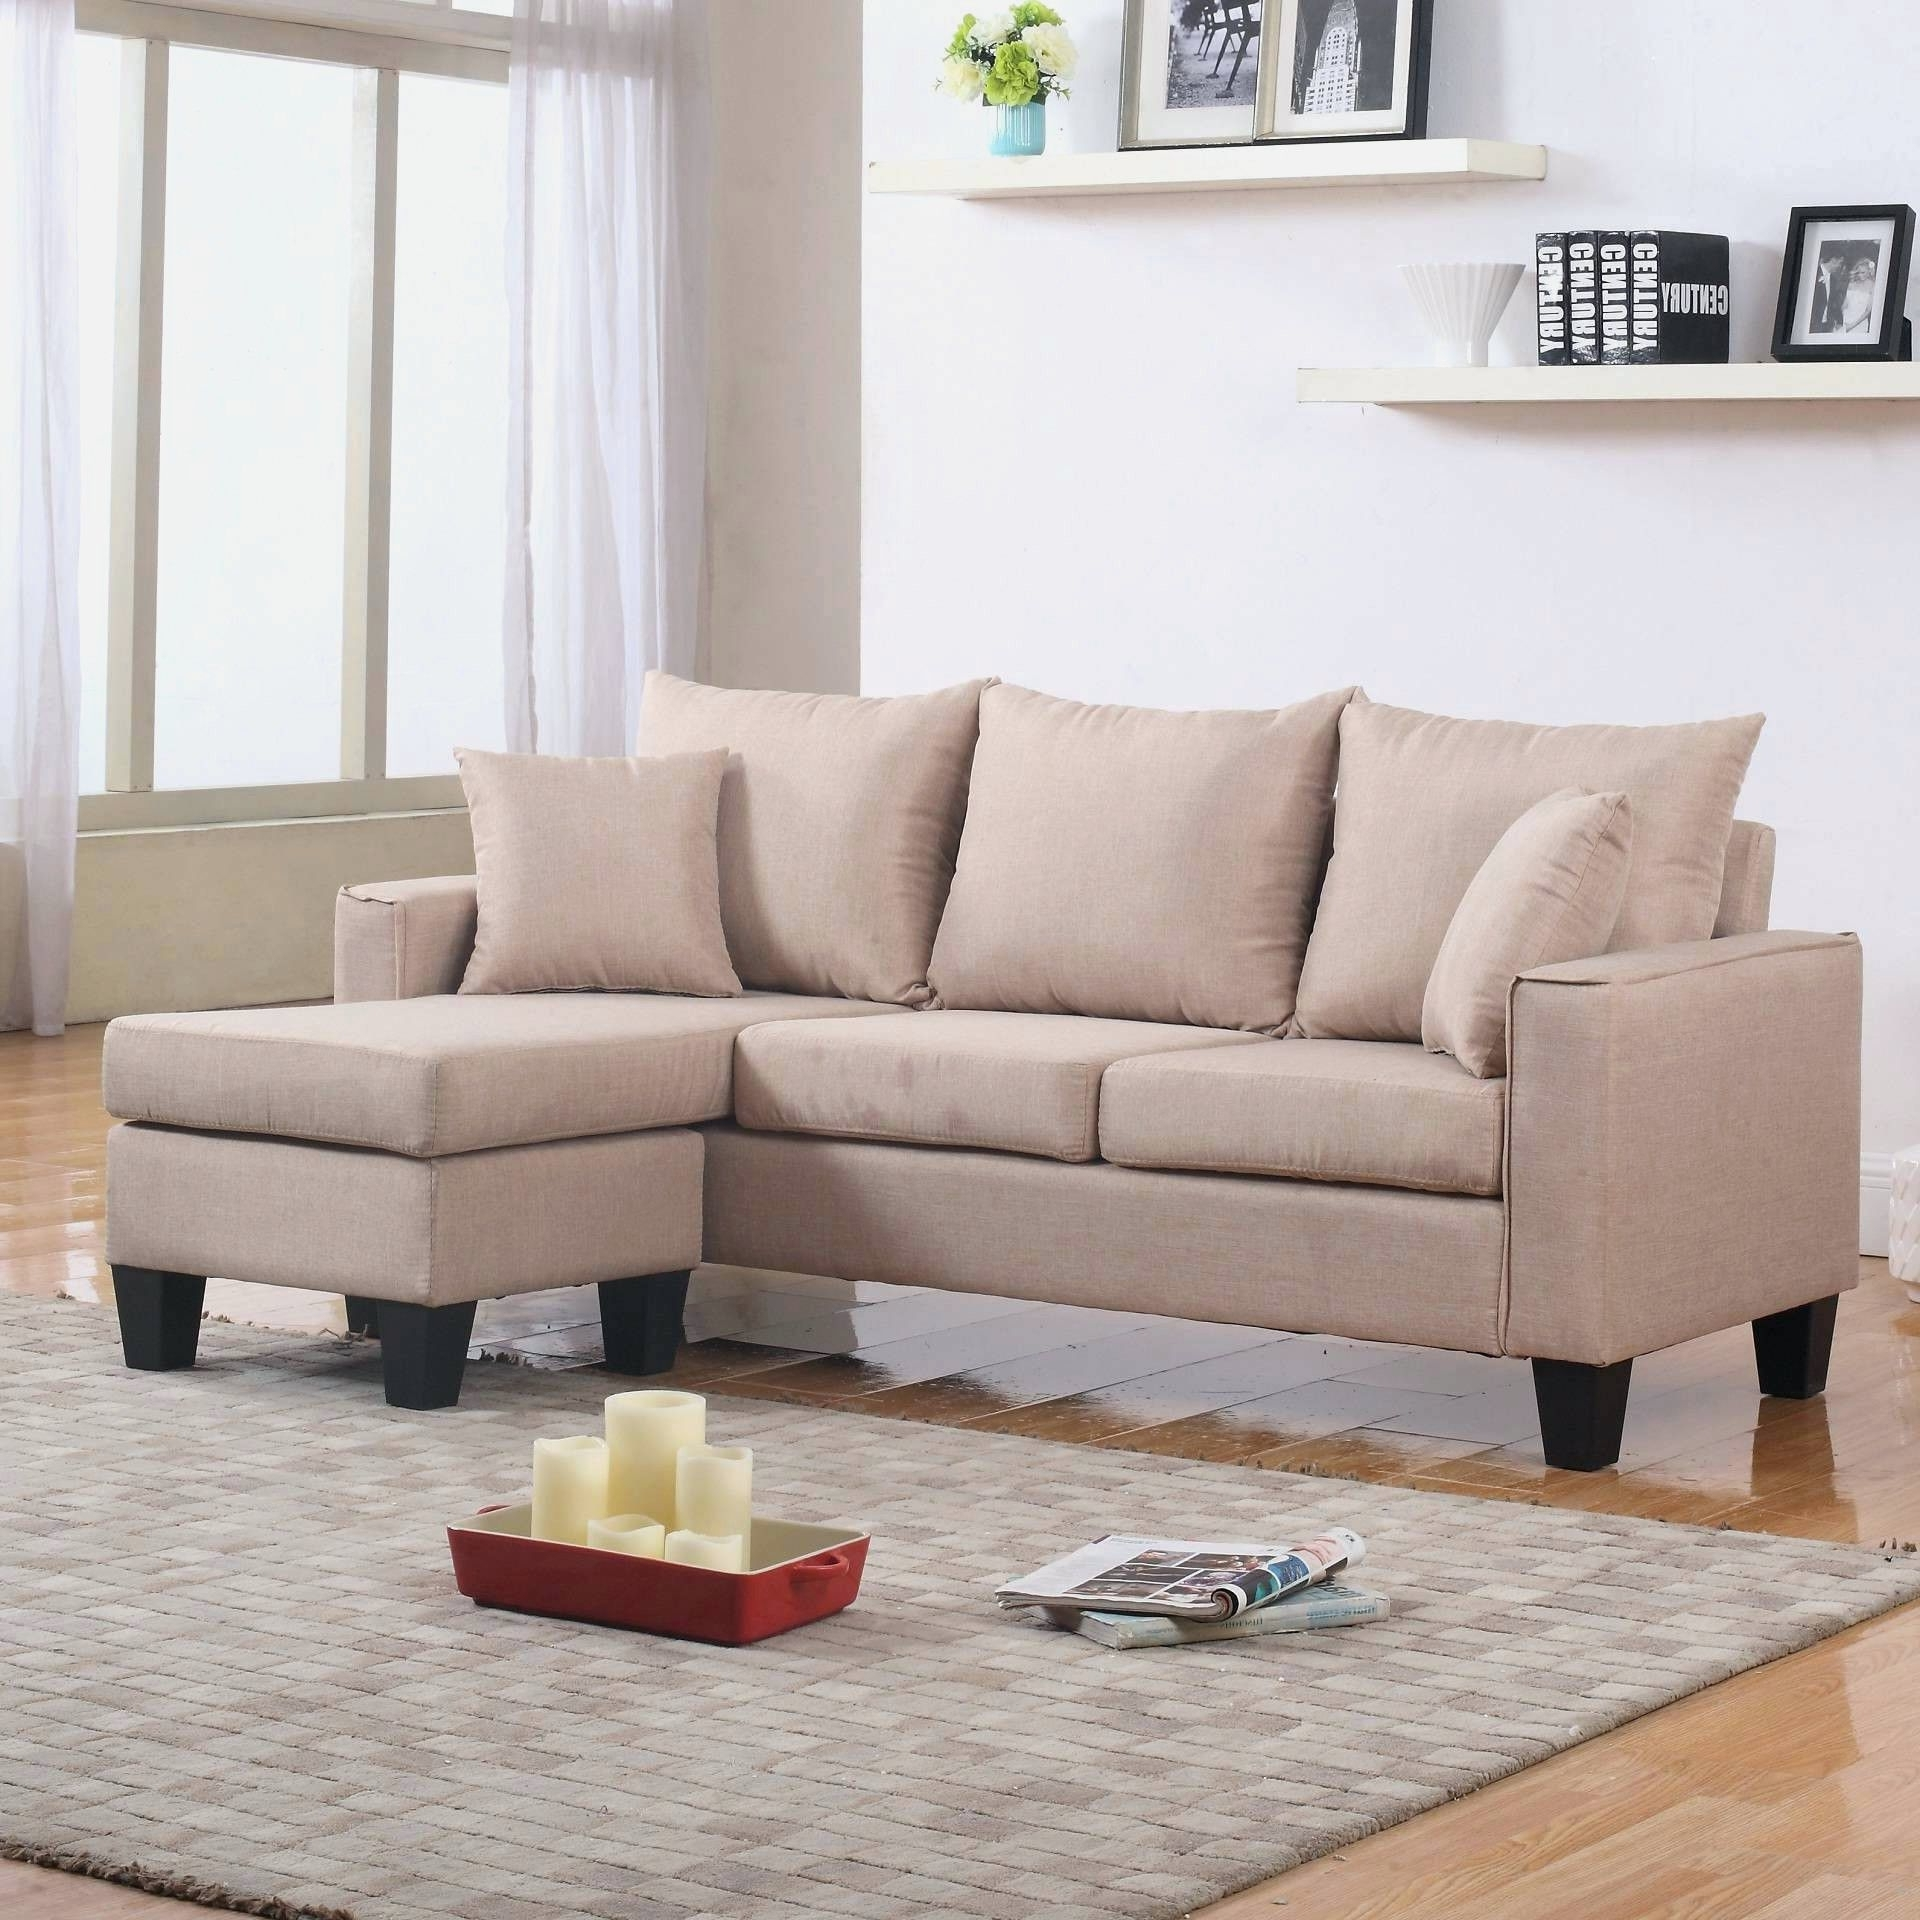 Joss And Main Sectional Sofas Pertaining To Most Popular Fascinating Cosmopolitan In And To Large Size Along With Backs (Gallery 10 of 15)